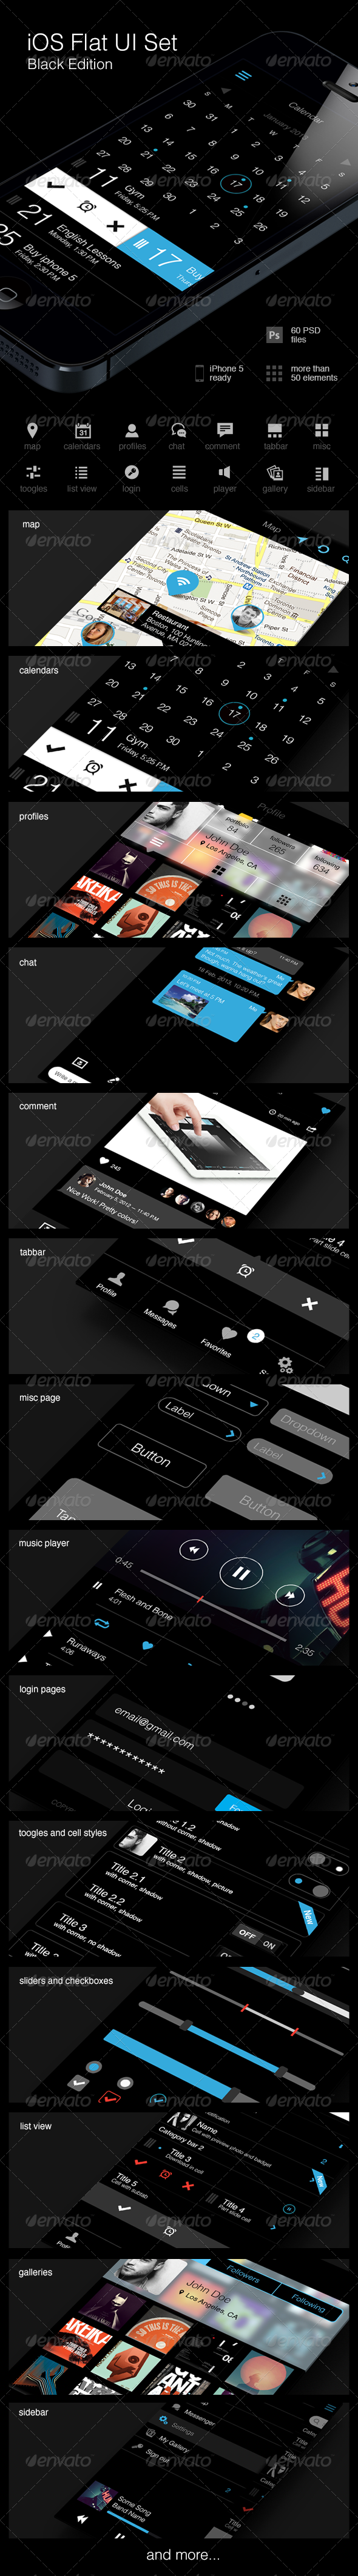 GraphicRiver iOS Flat UI Set Black Edition 5072374